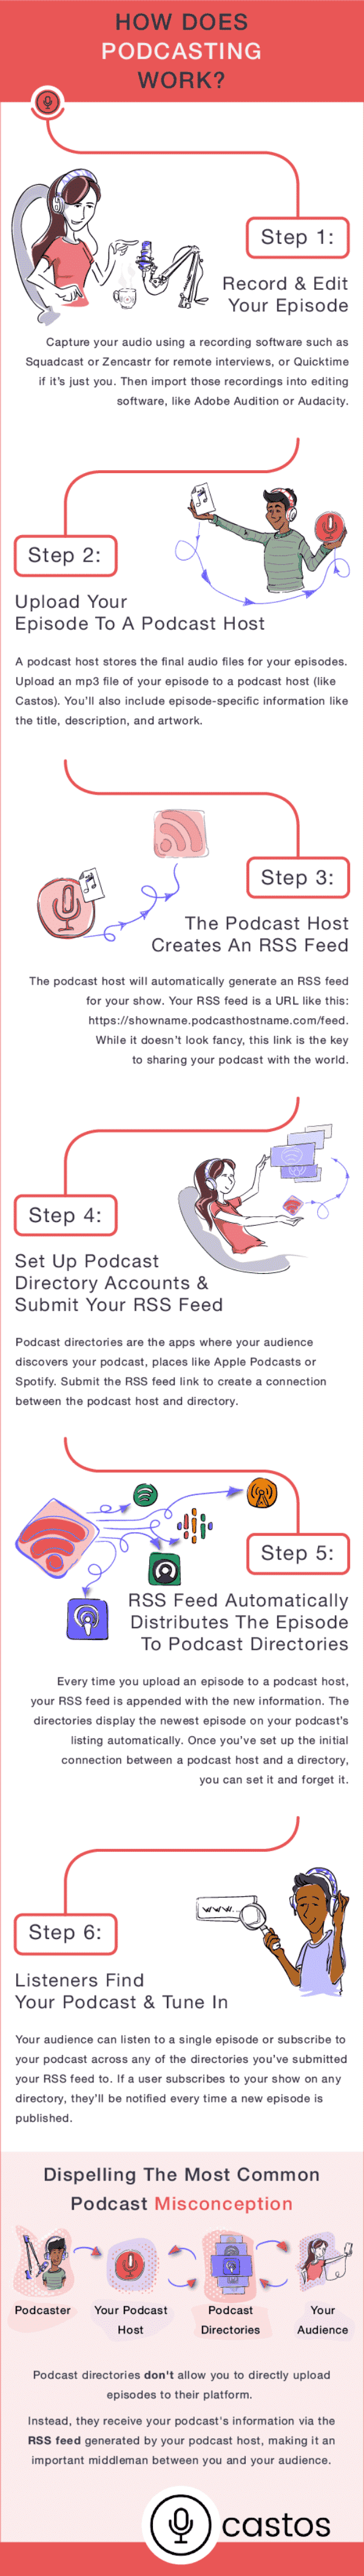 Learn more about the basics of podcasting in this great infographic!